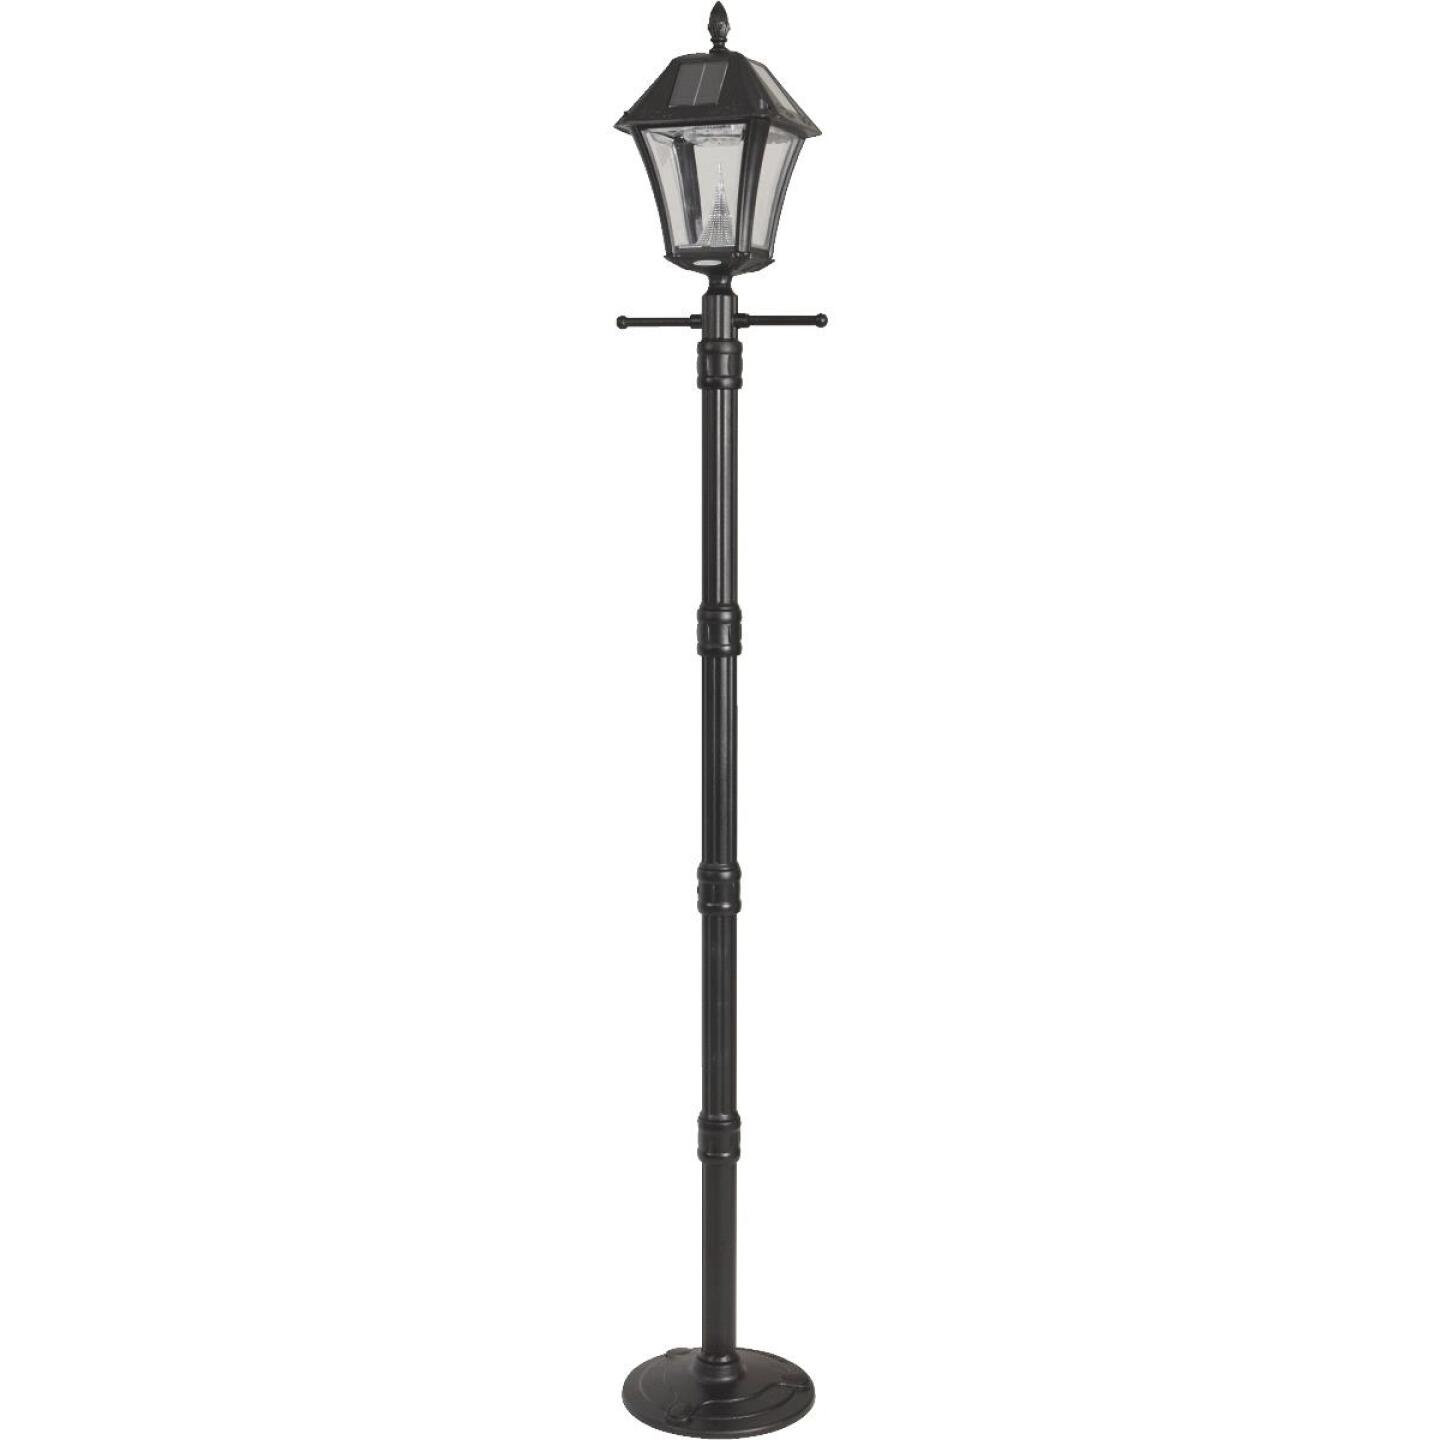 Gama Sonic Baytown II Black Solar Dusk-To-Dawn LED Post Light Fixture with Anchor Image 3